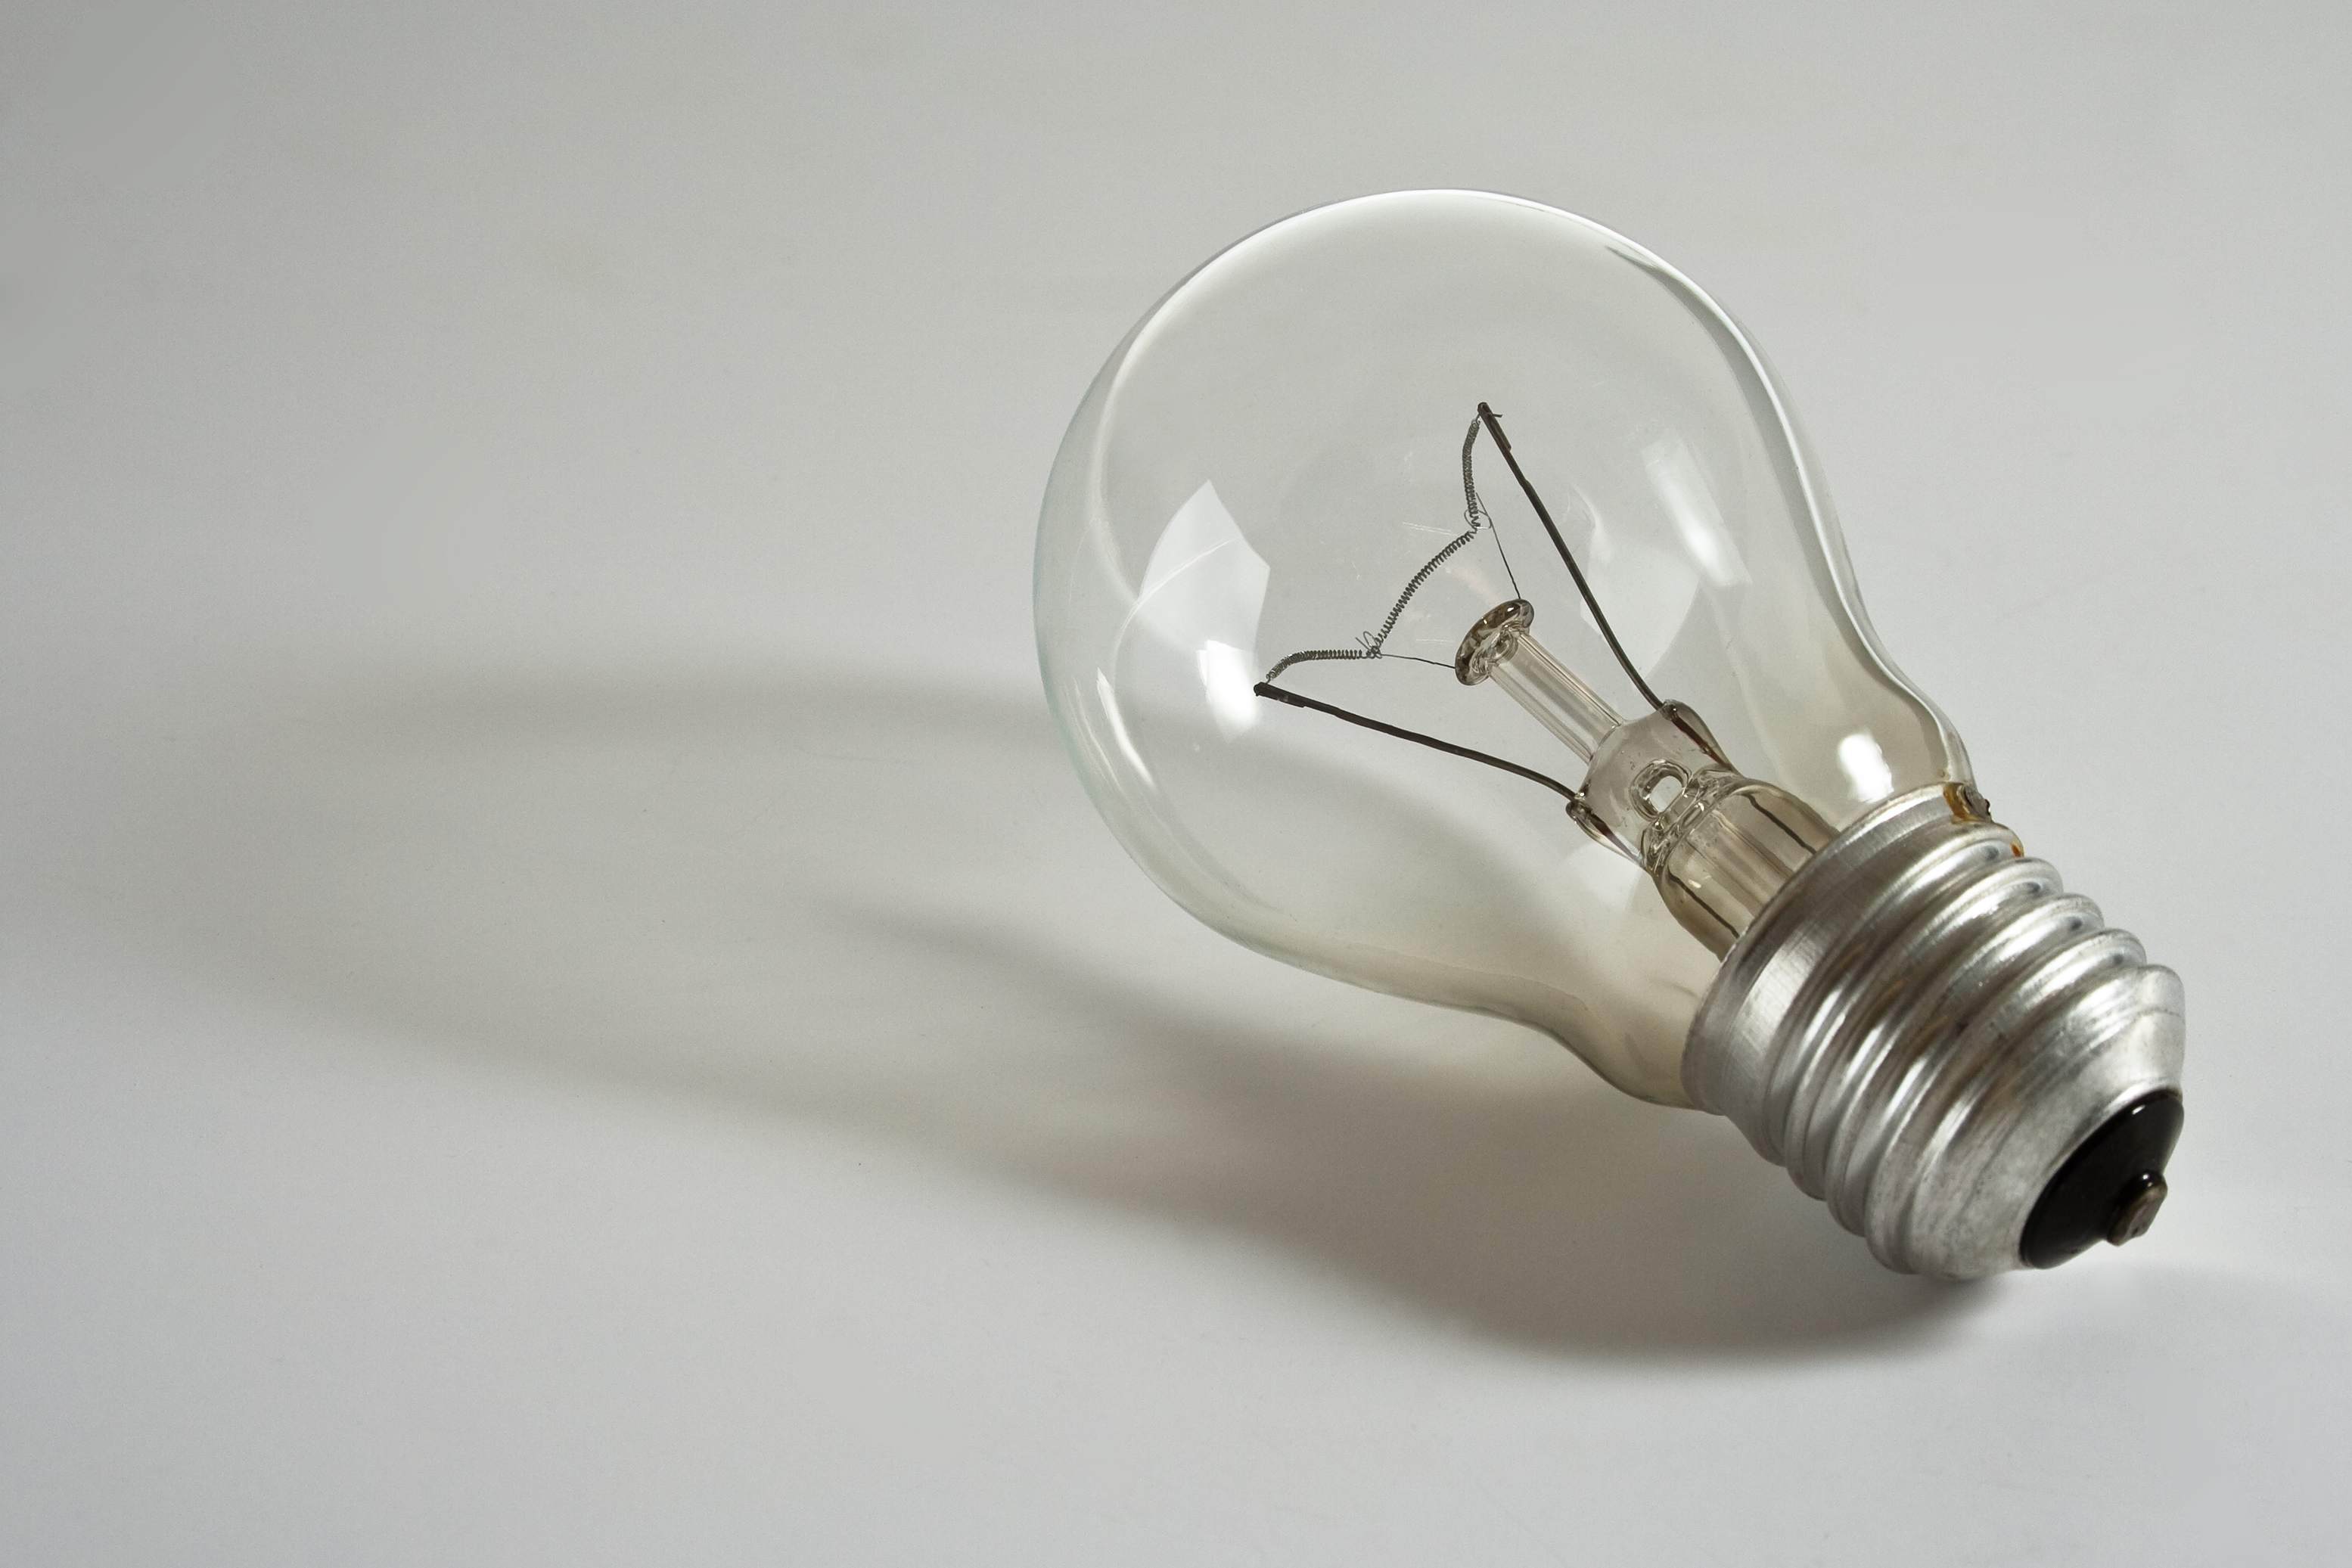 Light Bulb Energy Efficiency Home Family